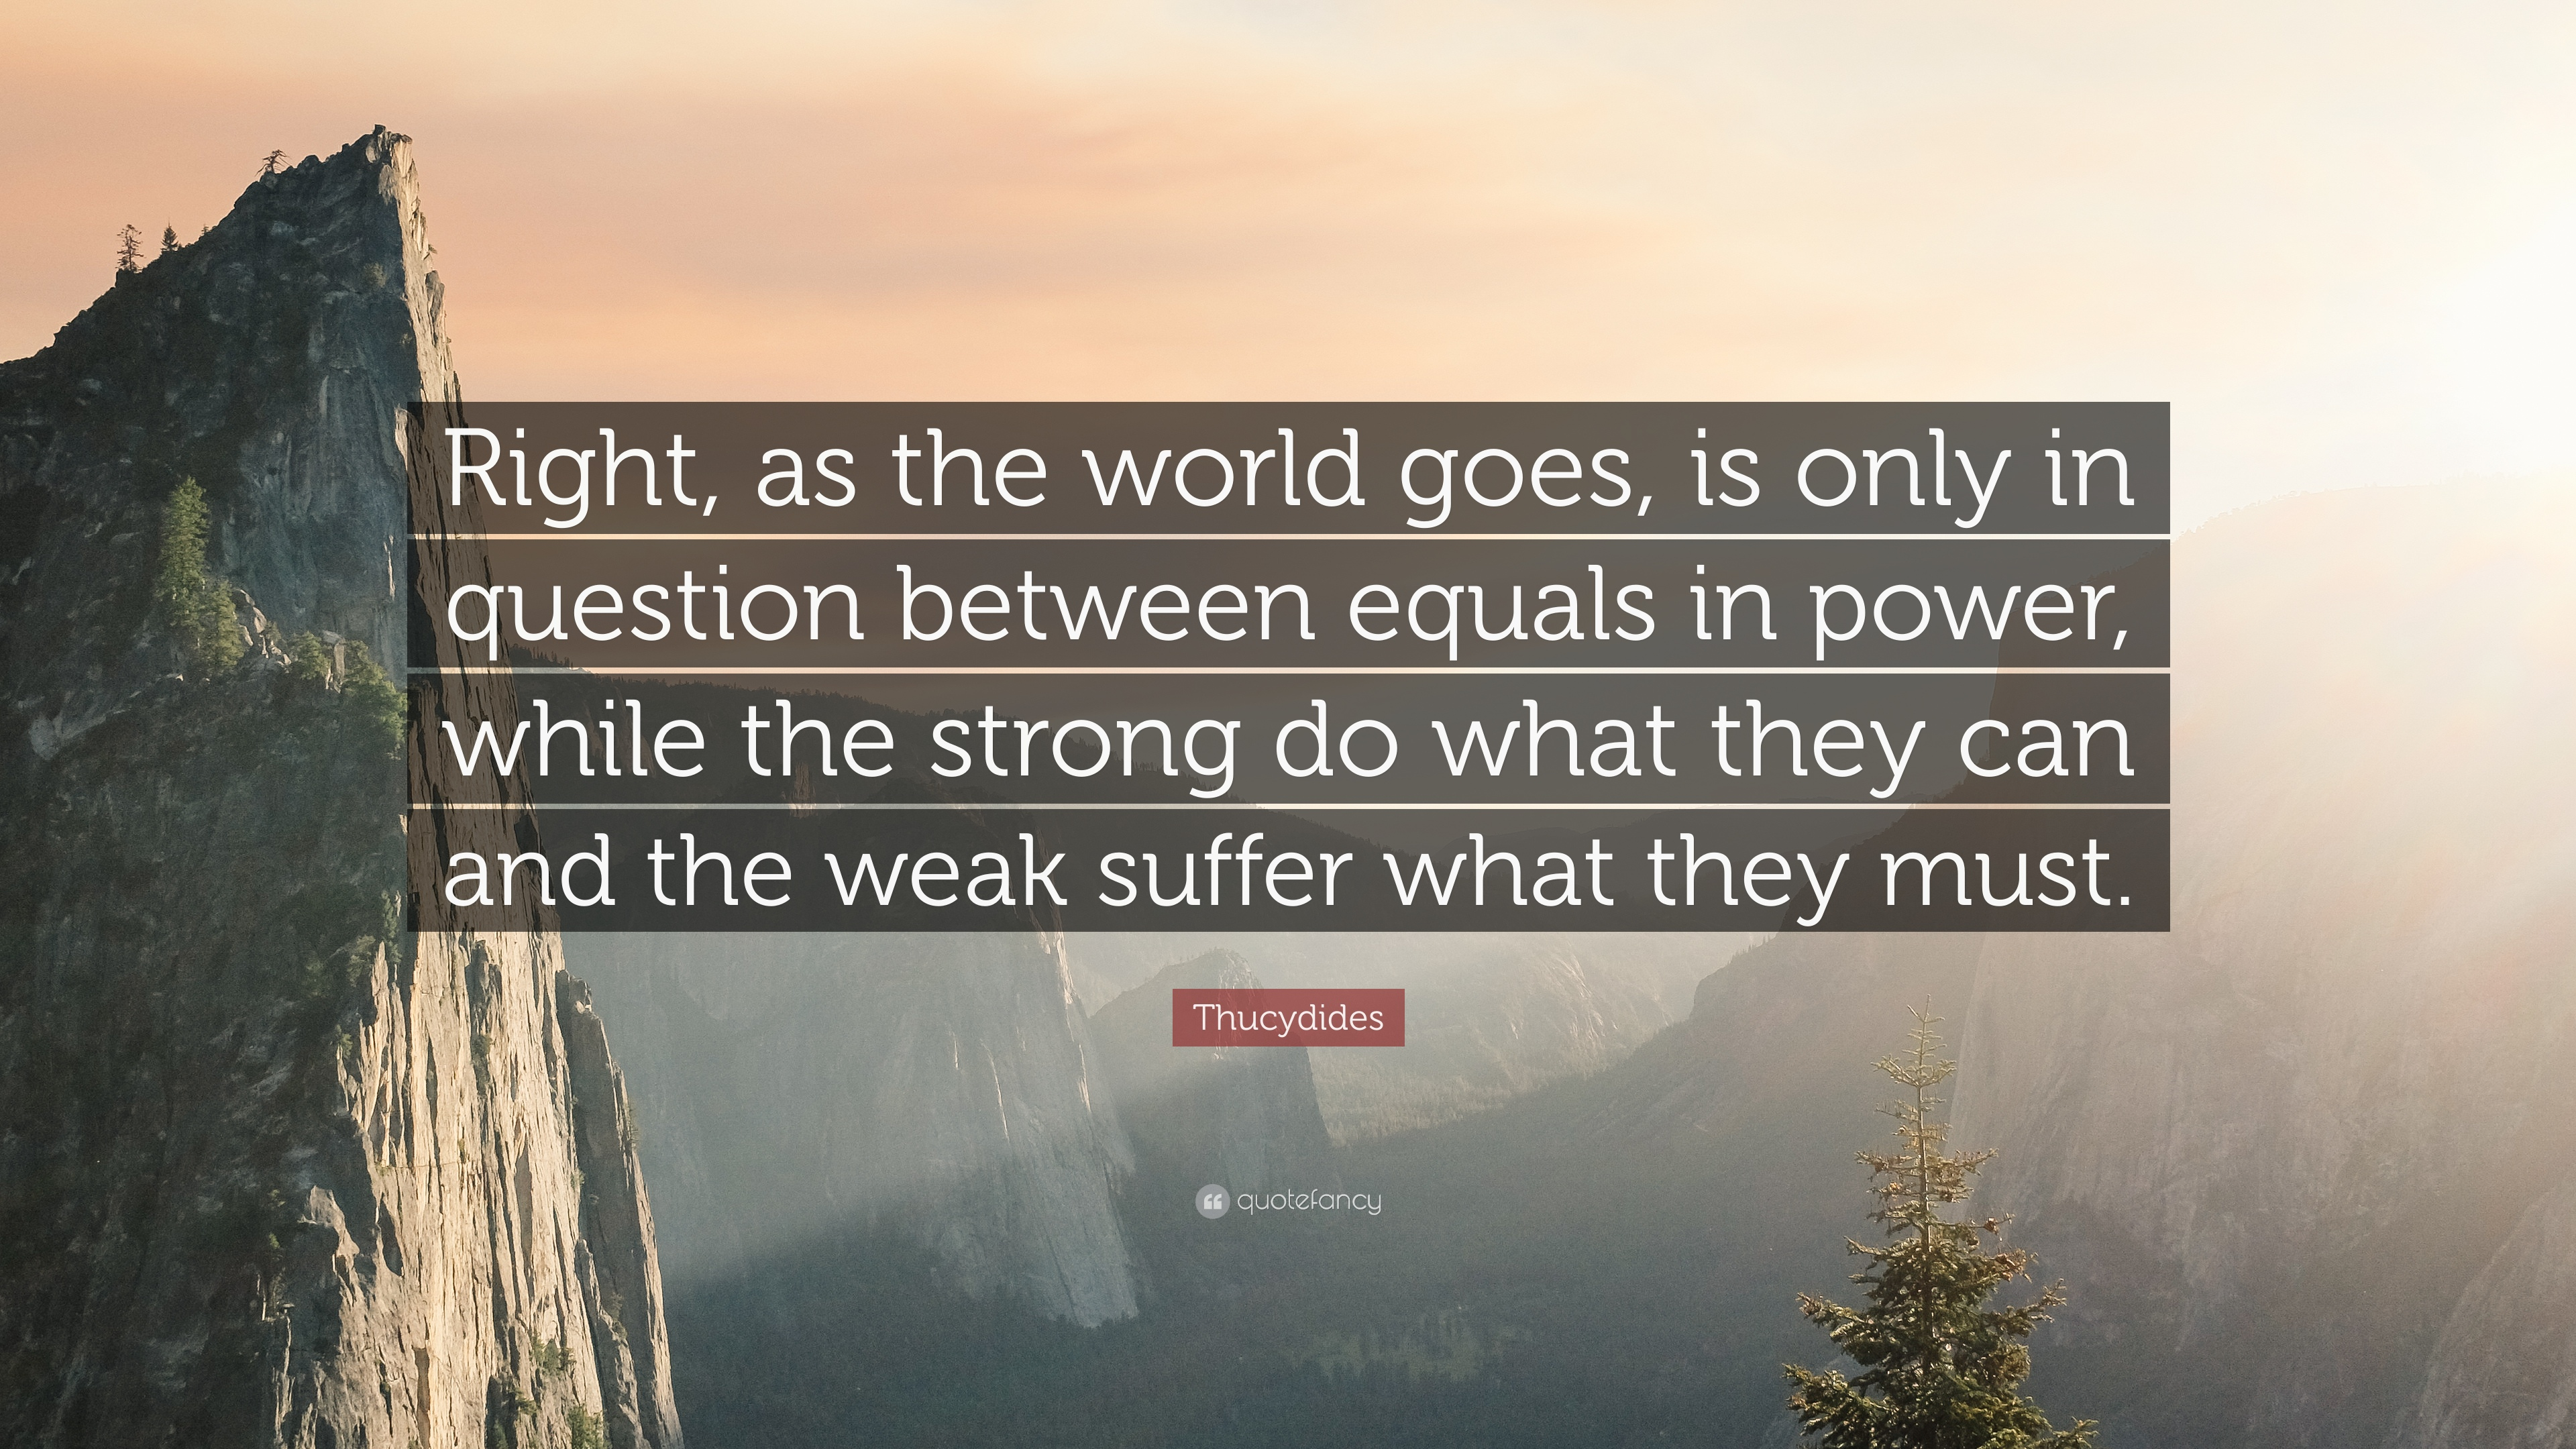 Thucydides Quotes 5